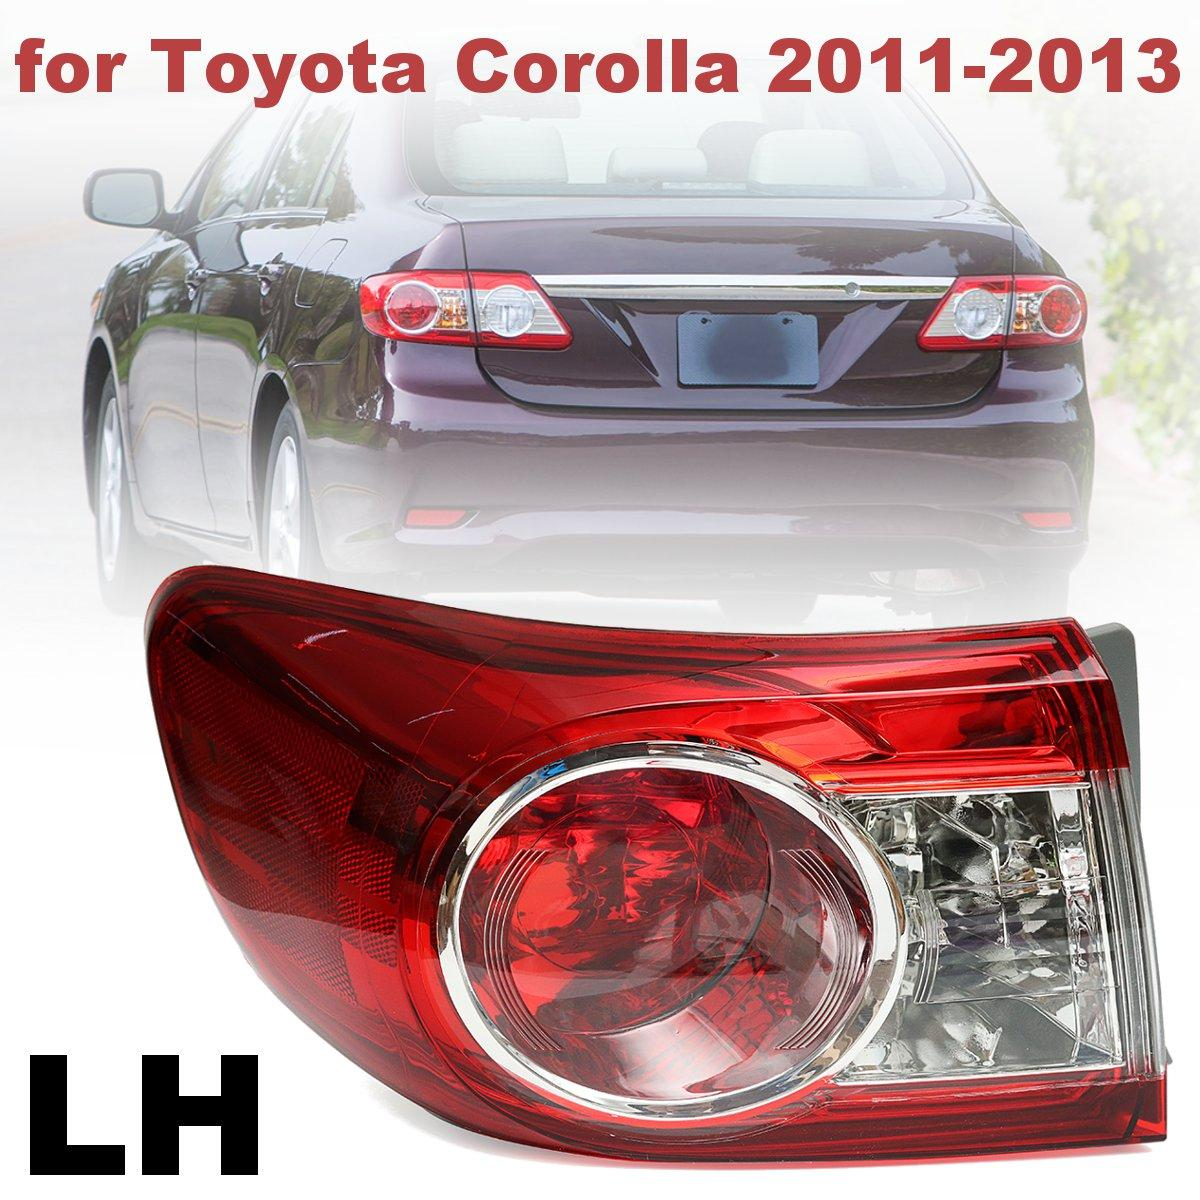 #TO2804111 #81560-02580 PMMA Replacement Red Driver Rear Left Side Tail Light Brake Lamp for Toyota Corolla 2011 2012 2013 free shipping 2pc mudslinger body rear tail side graphic vinyl for toyota hilux vigo 2011 2012 2013 2014decals